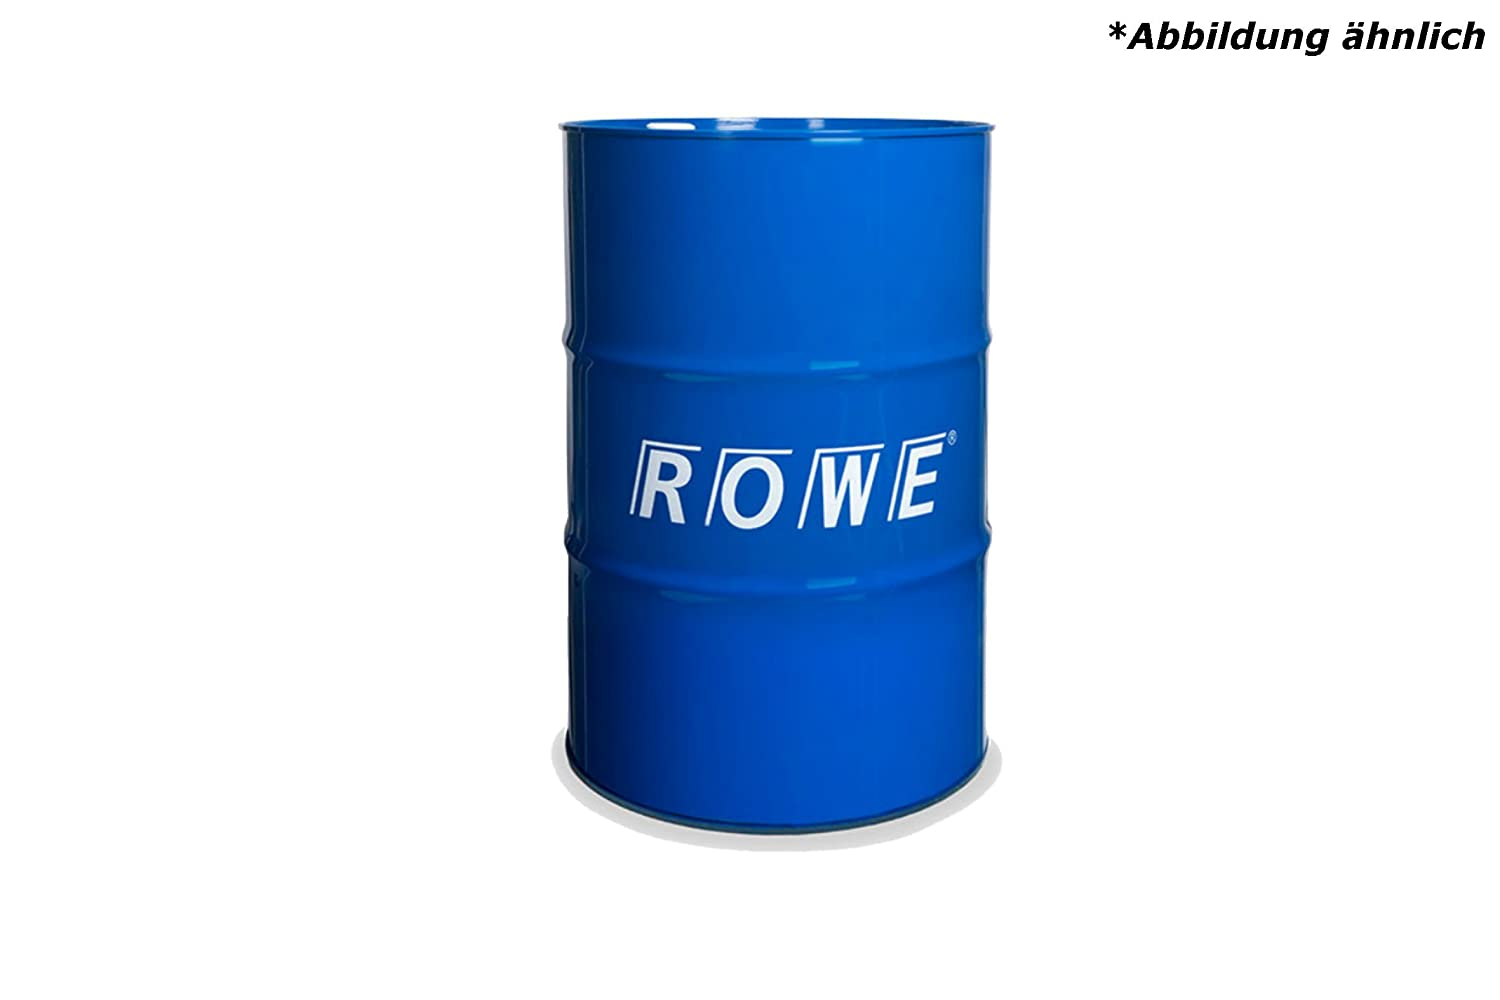 ROWE Hightec Antifreeze AN-SF 12+ READY-MIX -25 ° C - 5 Liter PKW Kü hler-Frostschutzmittel | Made in Germany ROWE Mineralöl GmbH